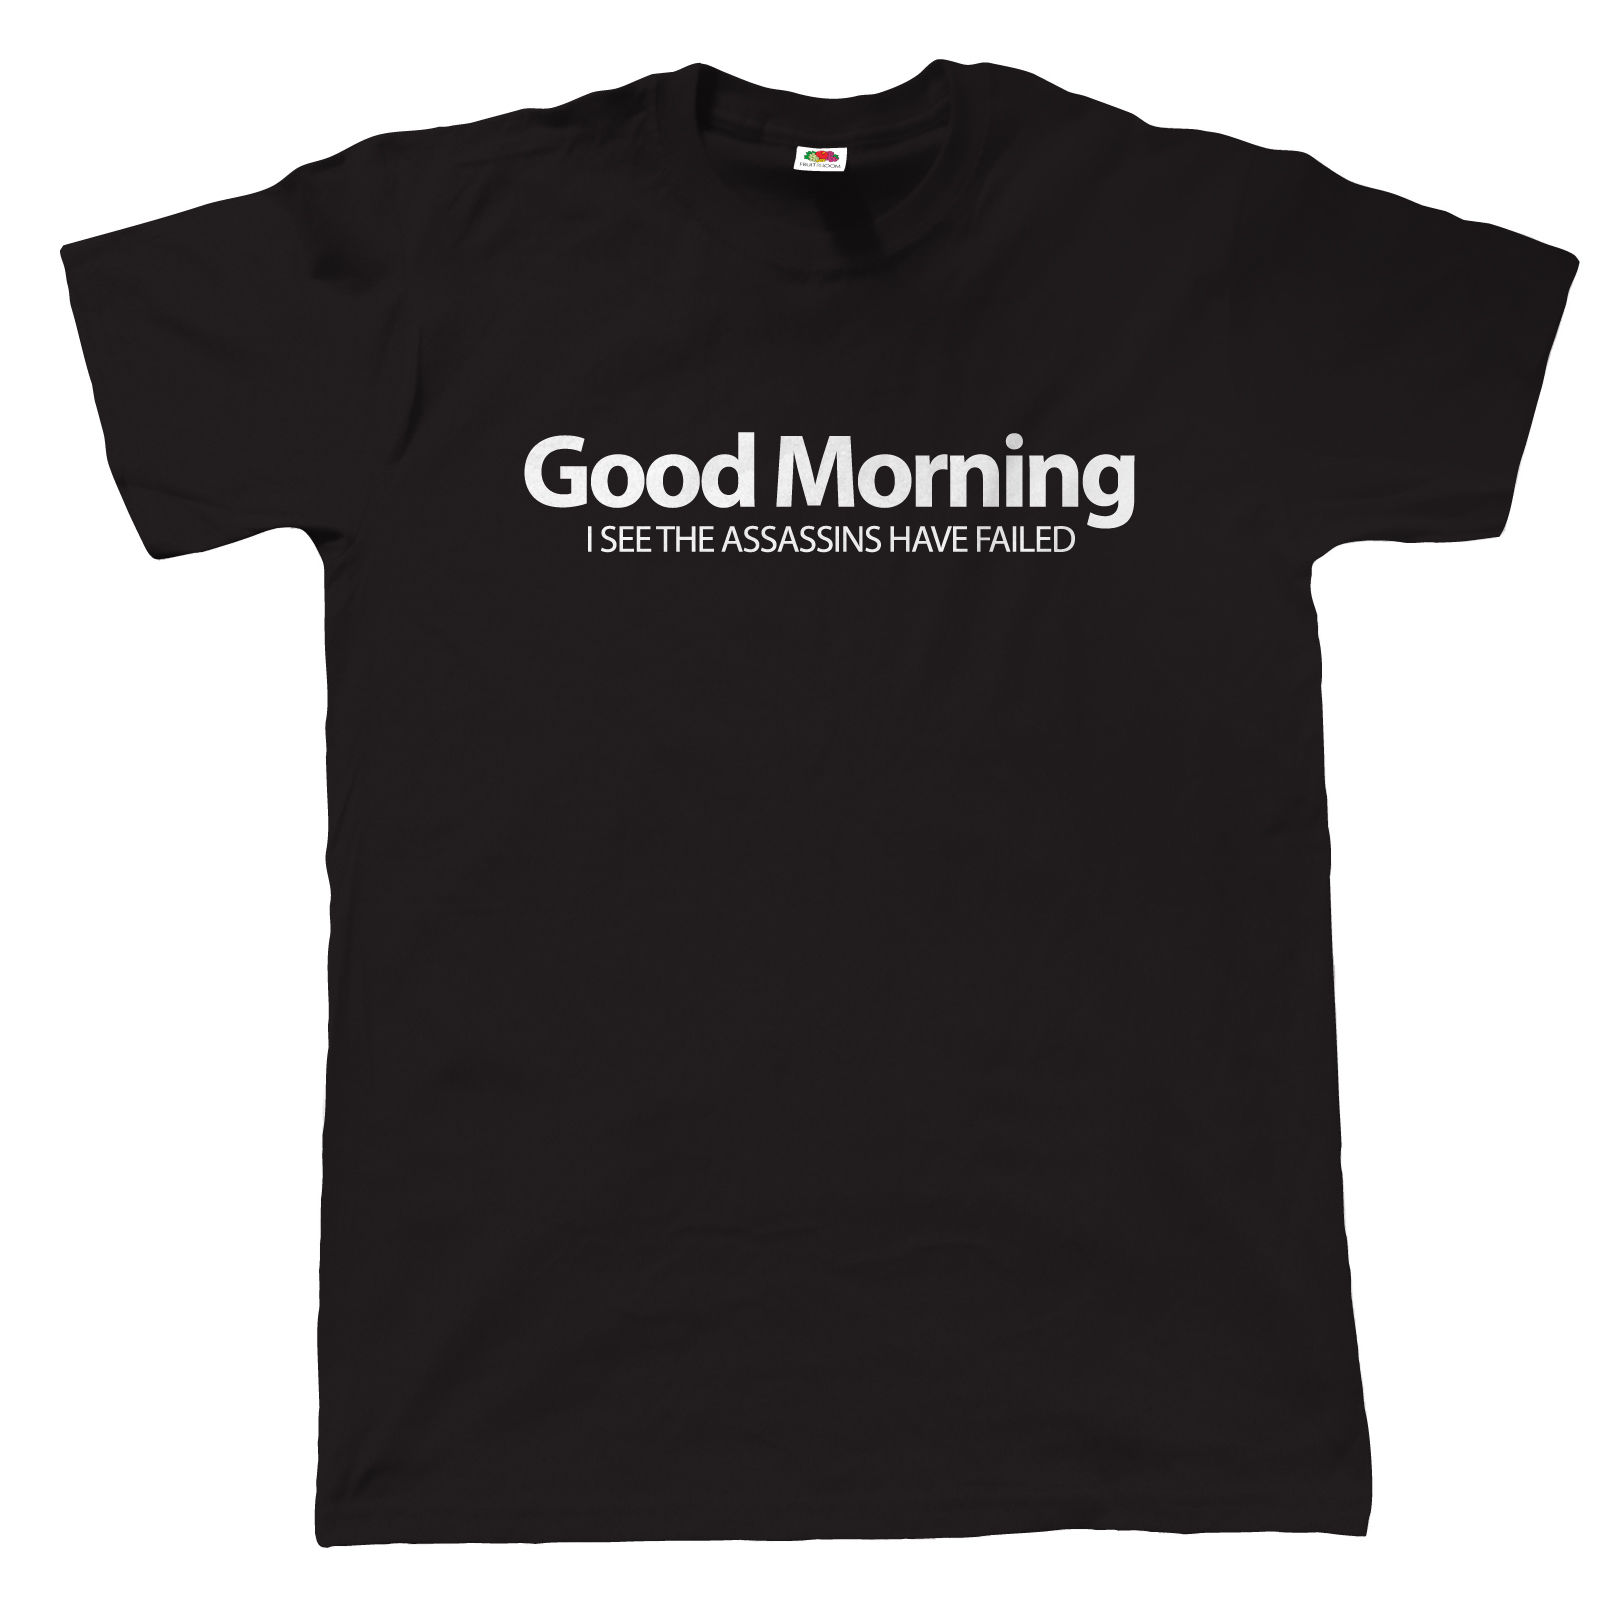 Good Morning, Mens Funny Offensive T Shirt - Gift Dad Fathers Day Loose Cotton T-Shirts For Men Cool Tops T Shirts